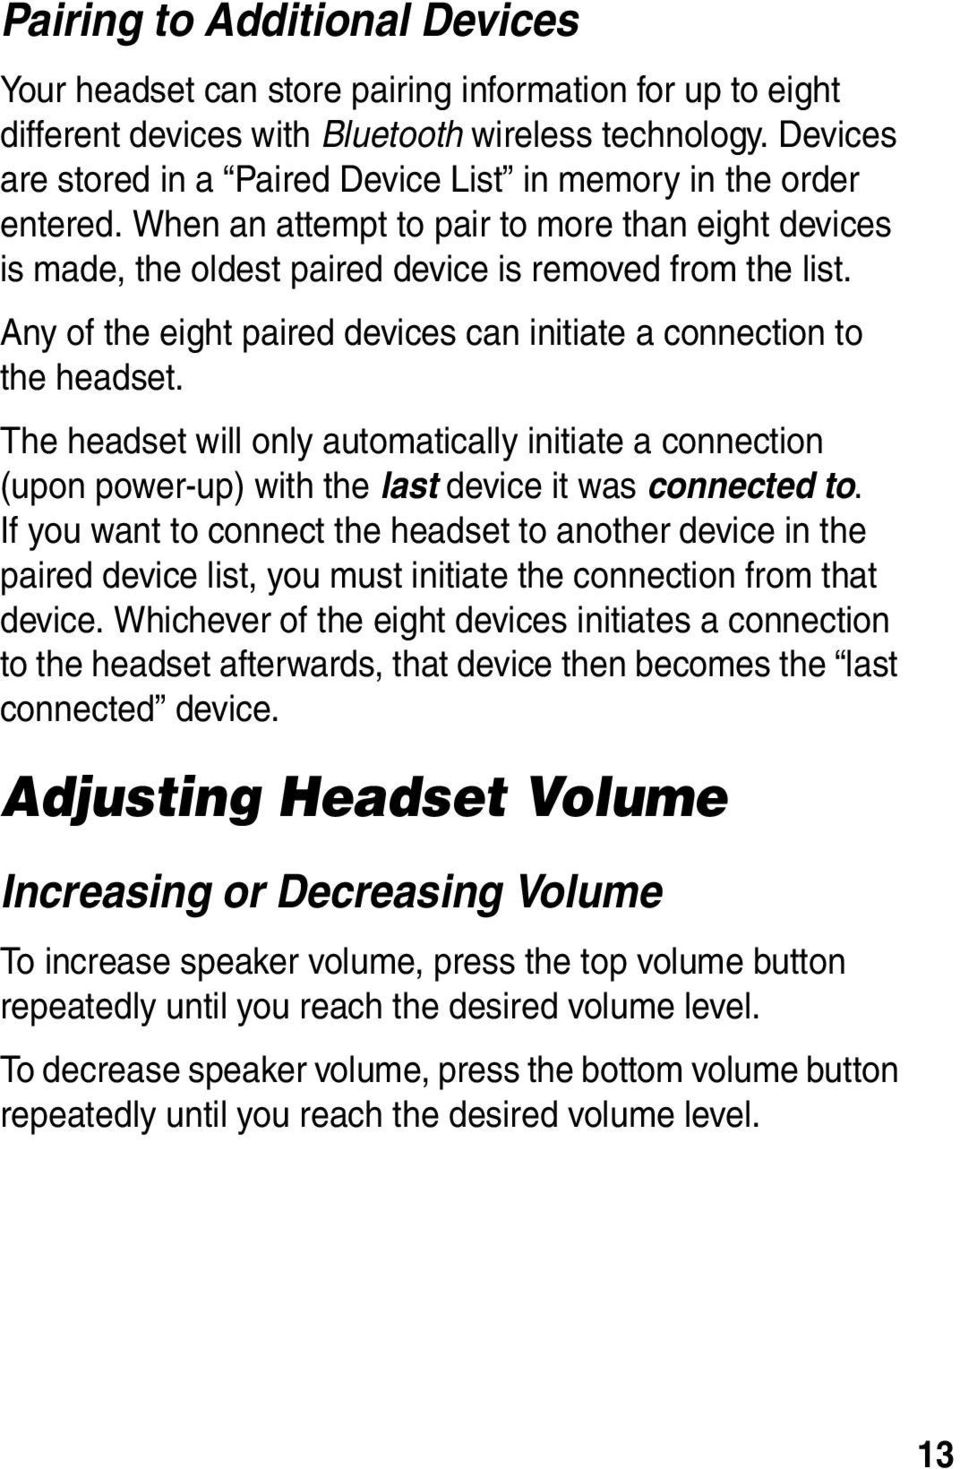 Any of the eight paired devices can initiate a connection to the headset. The headset will only automatically initiate a connection (upon power-up) with the last device it was connected to.